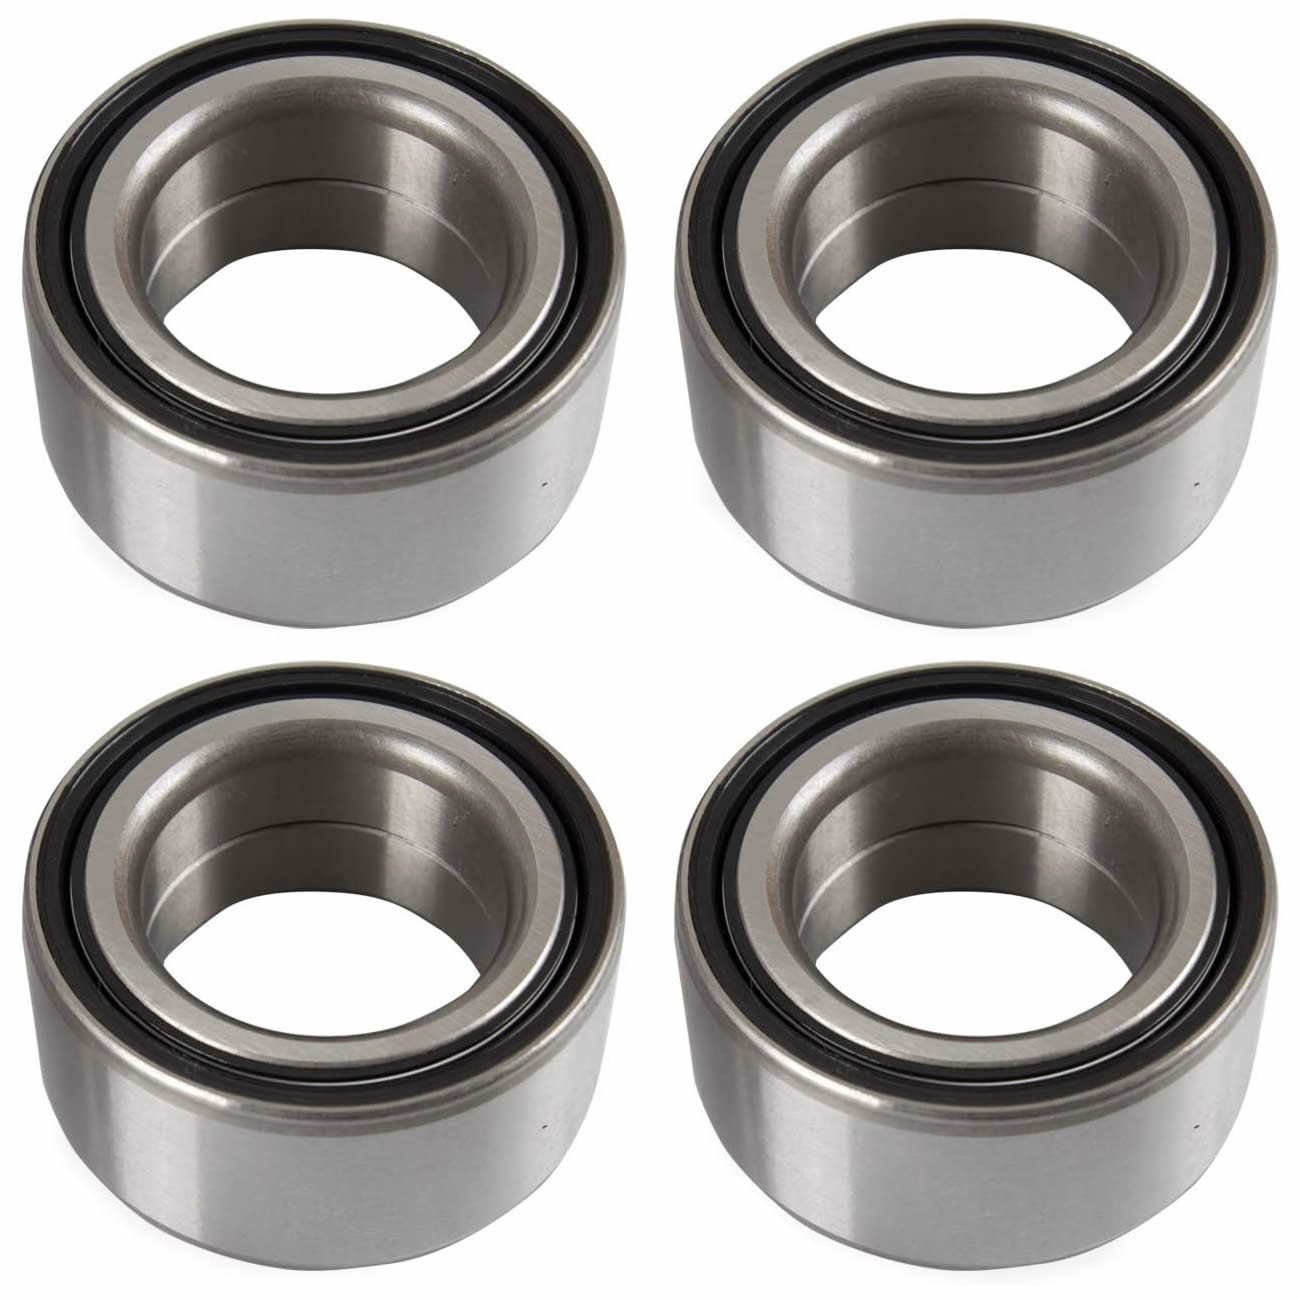 4 Pack Wheel Bearings for Polaris RZR 900 1000 4 S XP Ranger Turbo Front and Rear Replace 3514822 3514699 3514924 3514627 enlarge